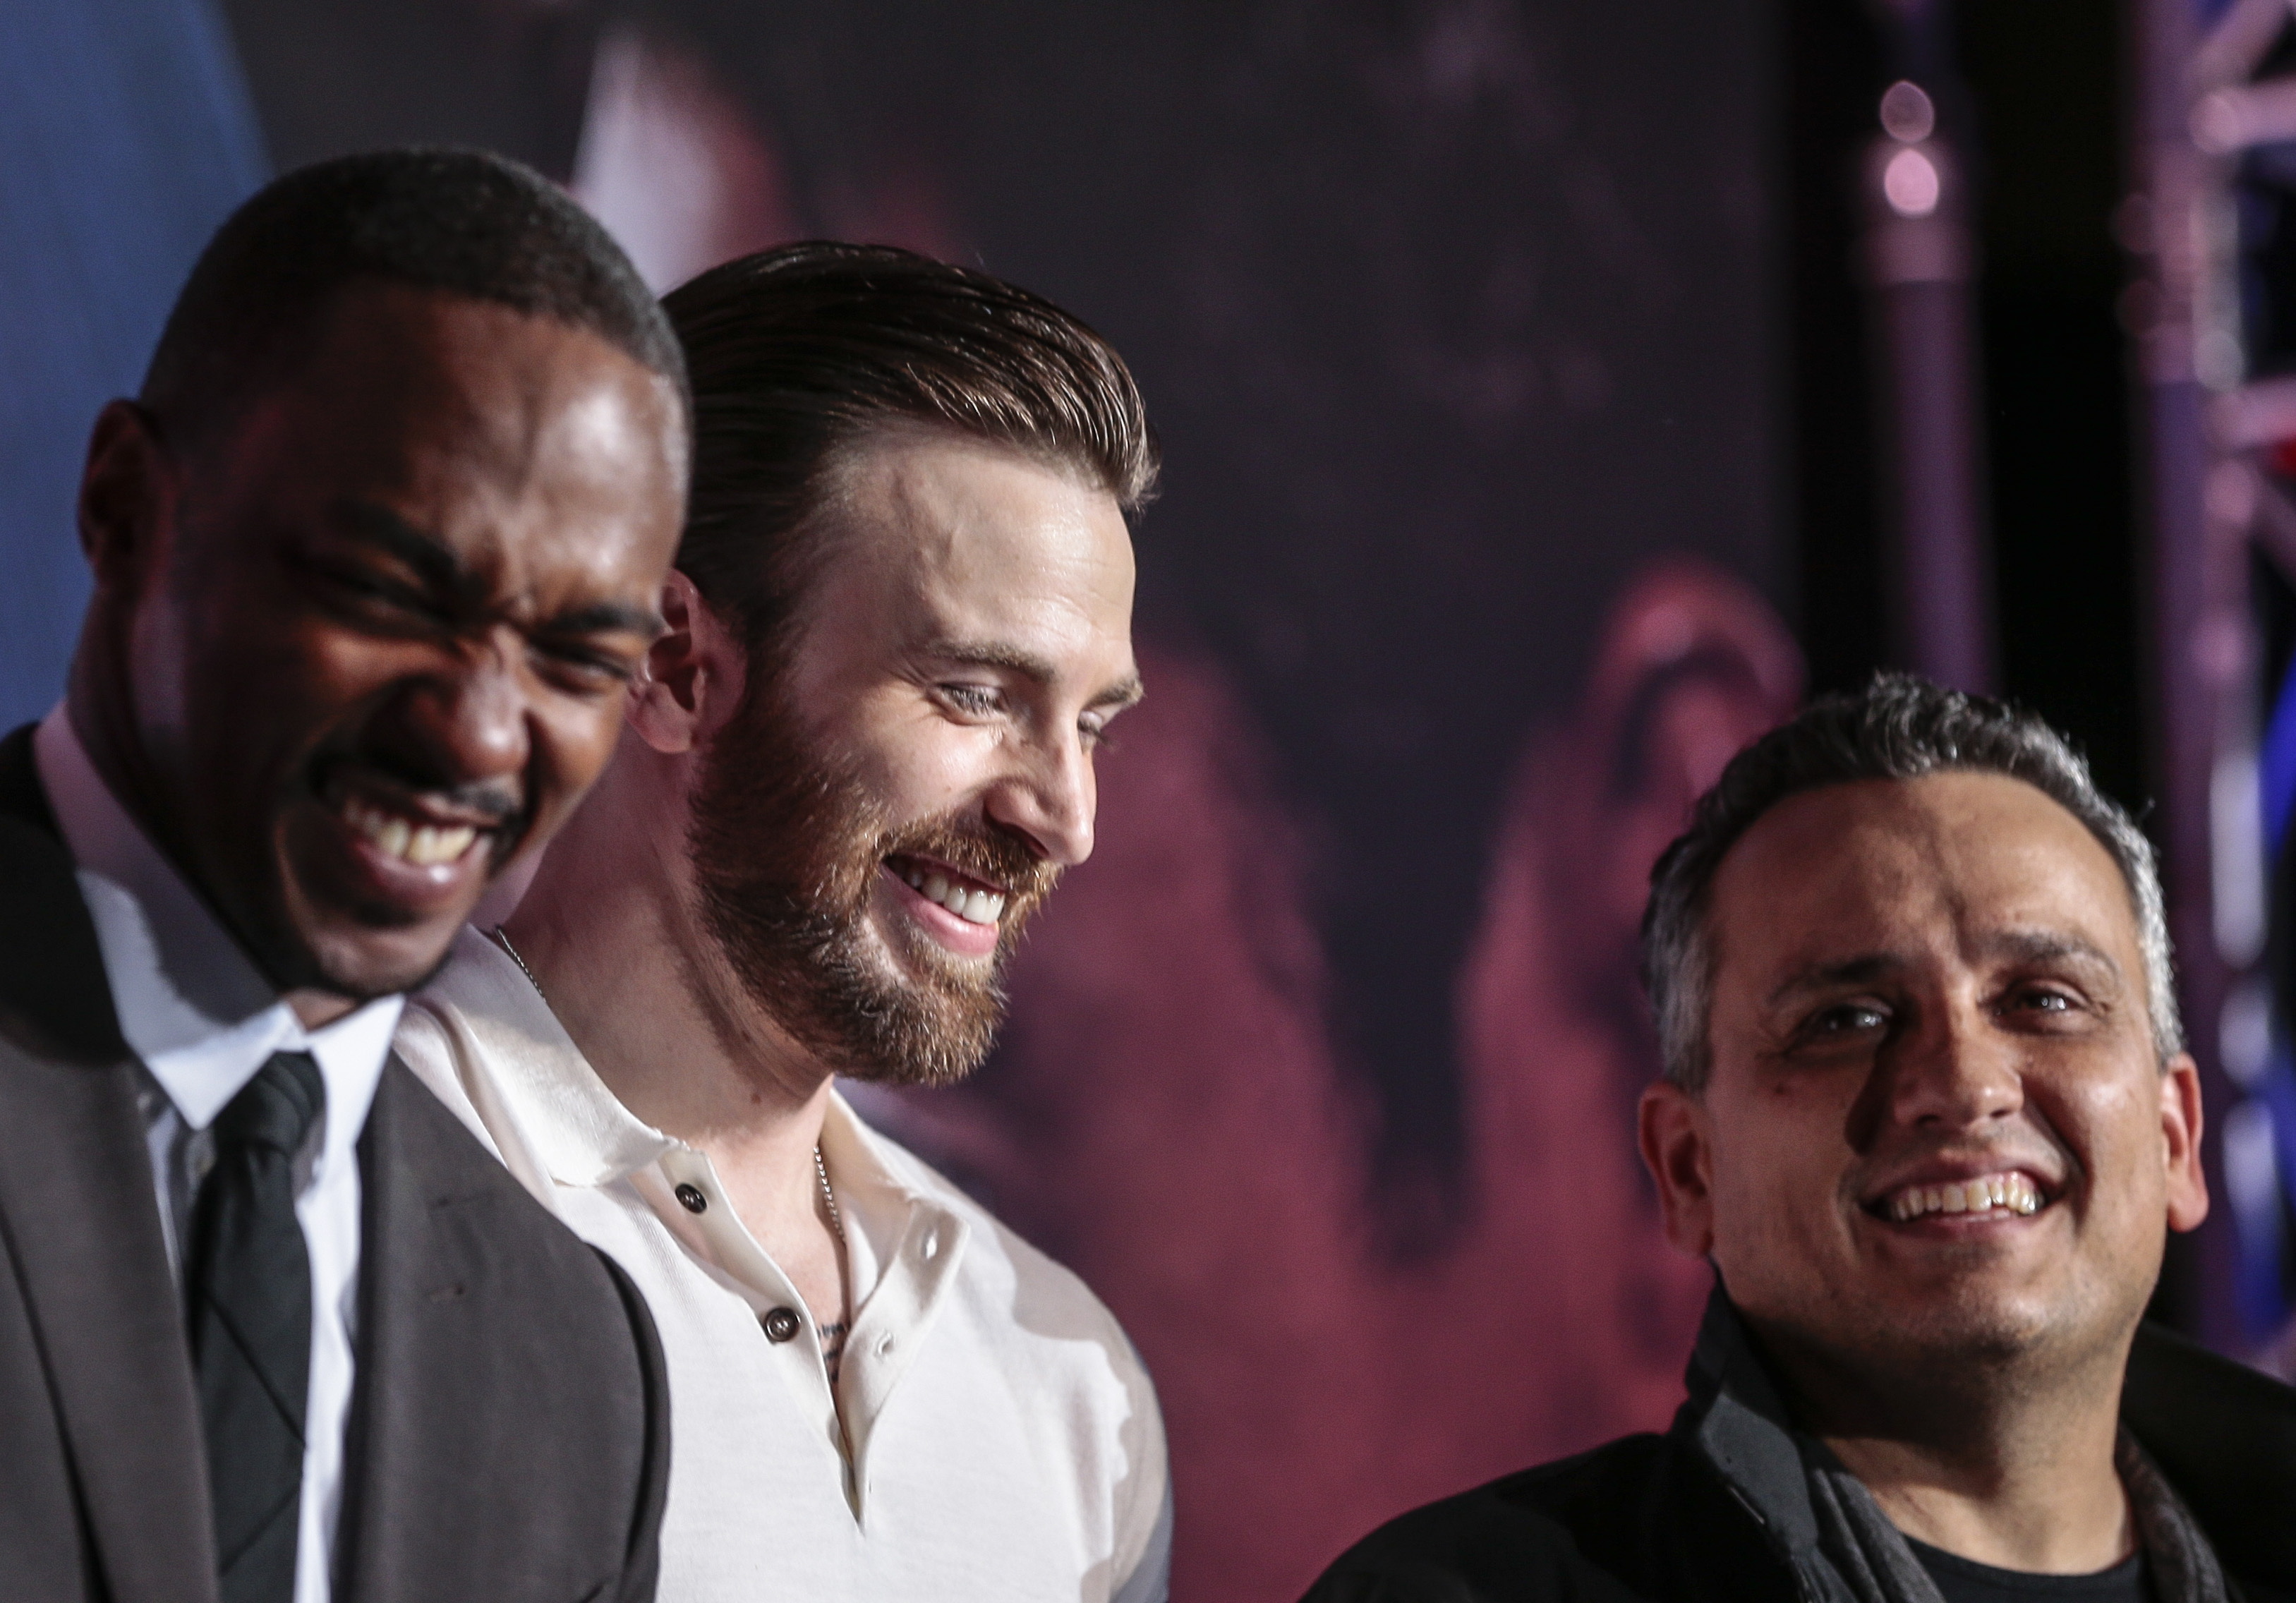 BLUE CARPET. Chris Evans, Anthony Mackie, and director Joe Russo at the premiere of 'Captain America: Civil War' in Singapore. Photo by Wallace Woon/EPA